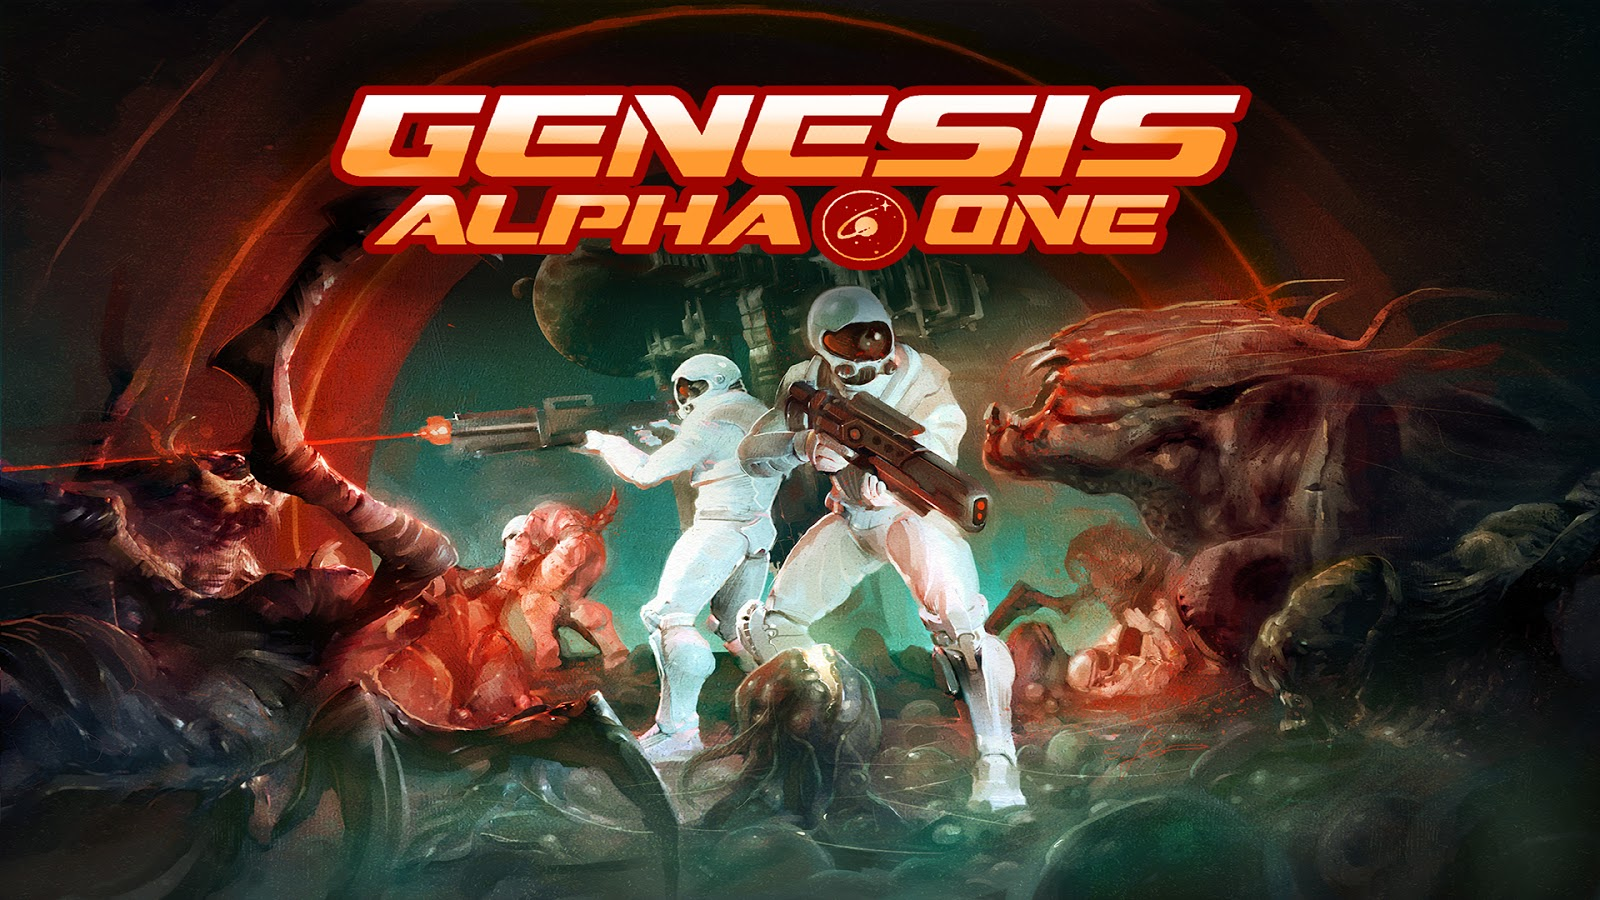 Link Tải Game Genesis Alpha One Deluxe Edition Miễn Phí Thành Công